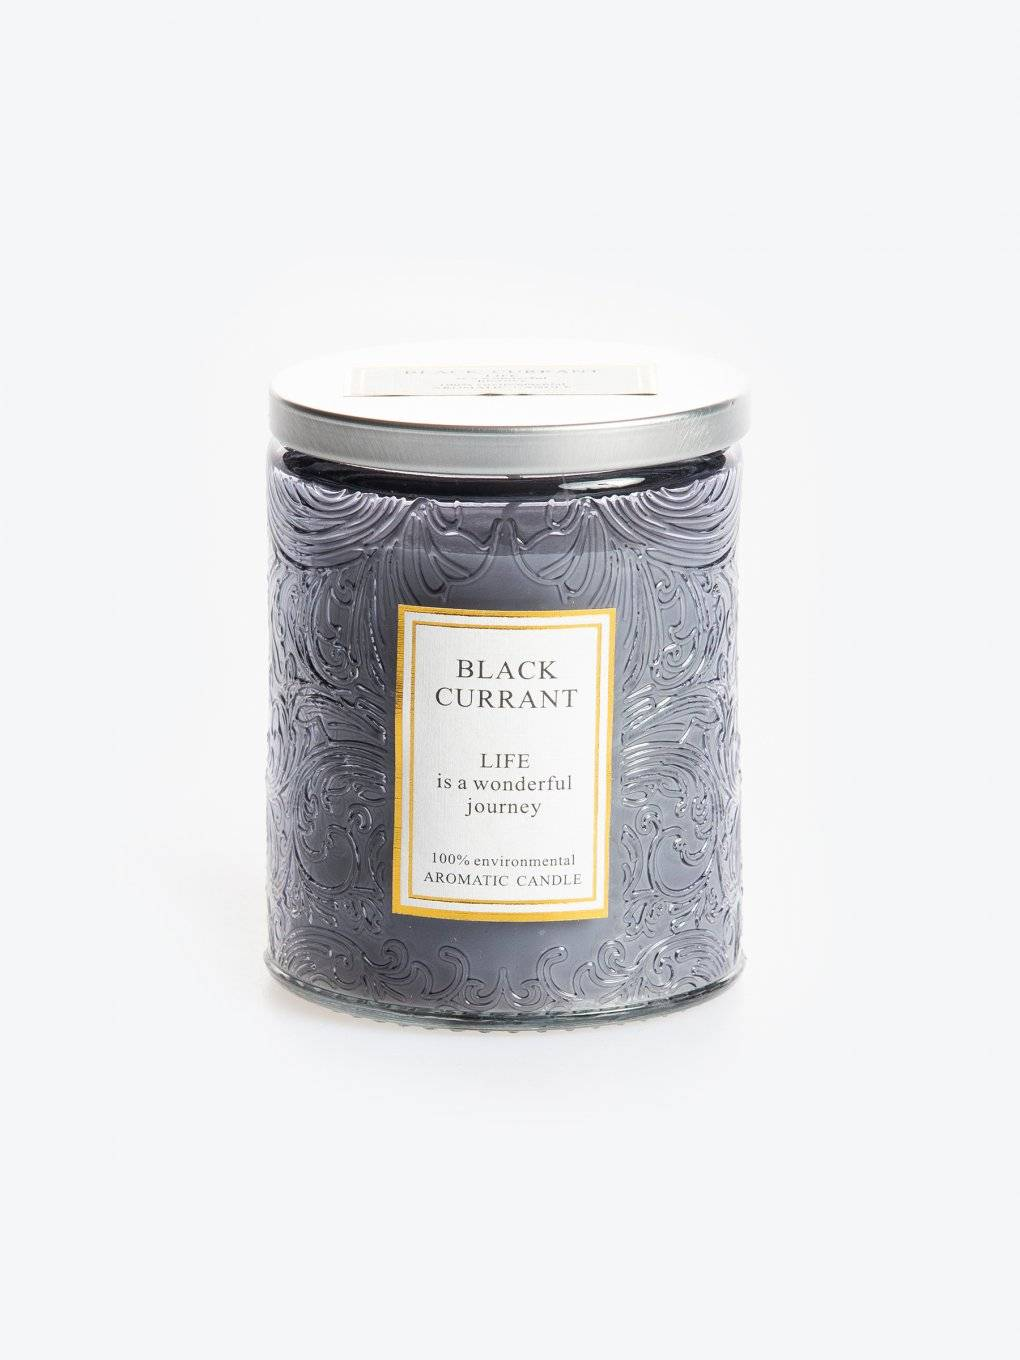 Black currant scented candle